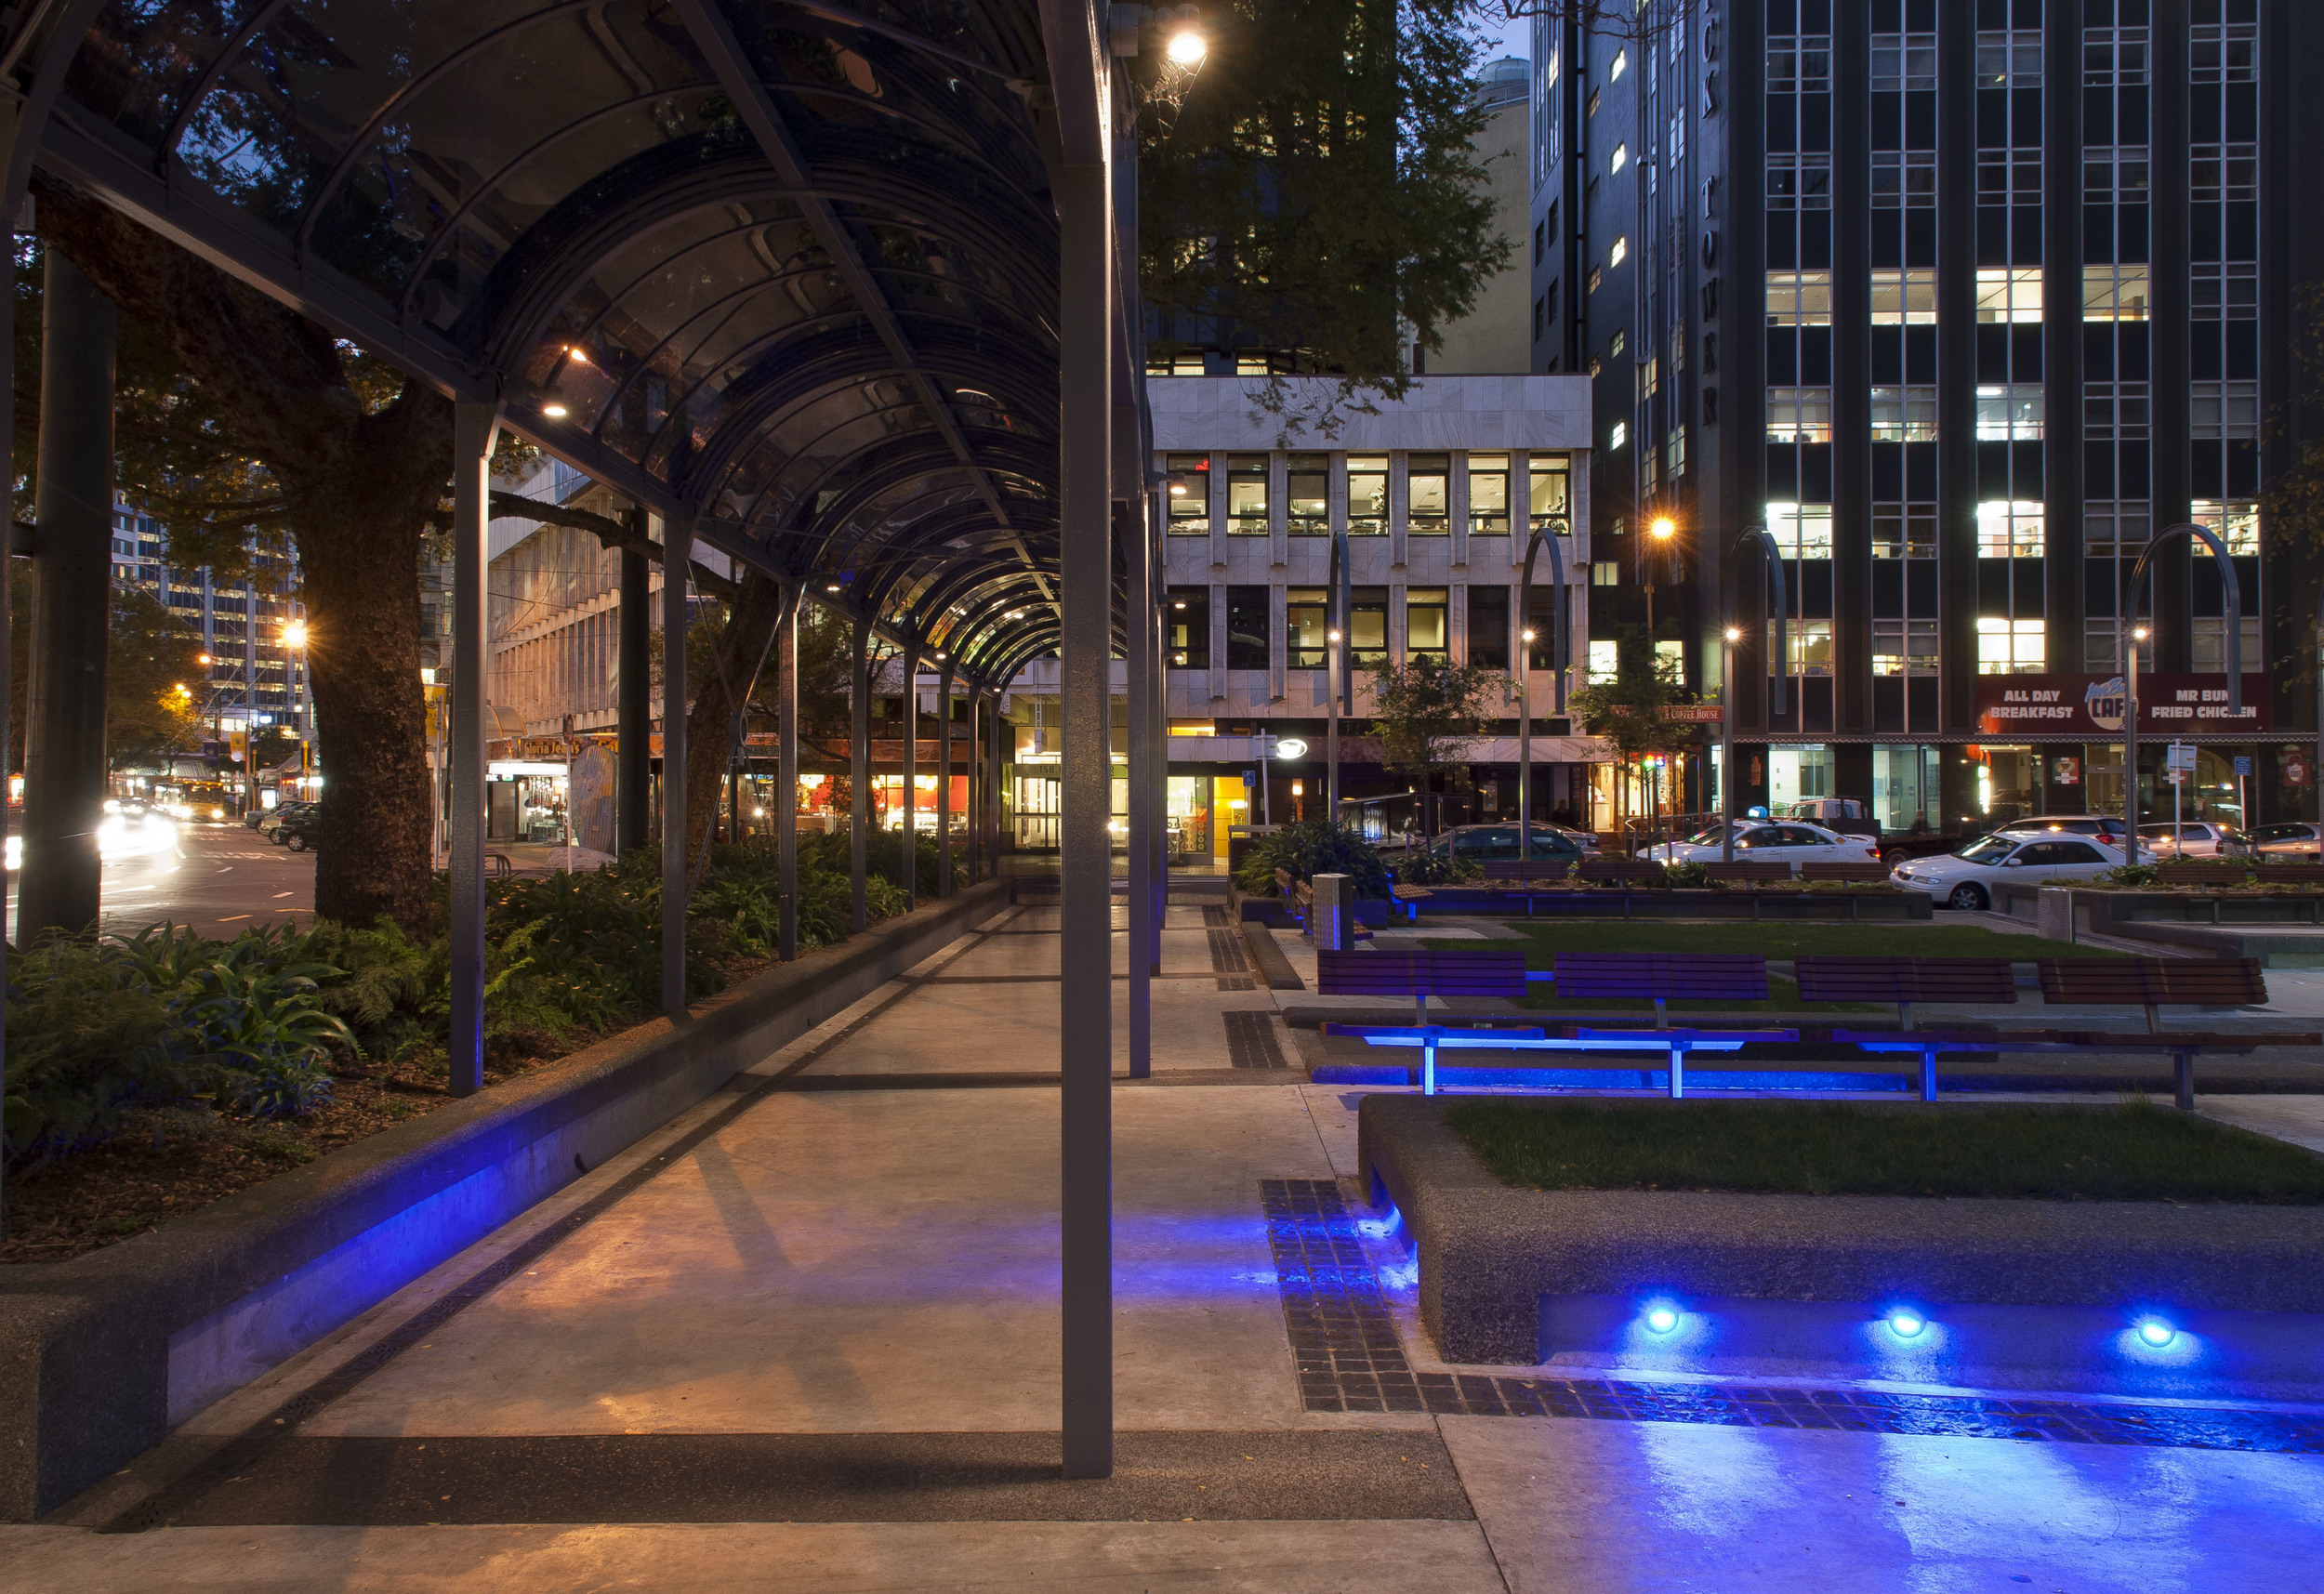 Midland Park, Wellington   S&T provided replacement lighting to encourage pedestrians to use the park at night and to highlight the seating areas,sculptures and river stone beds. .